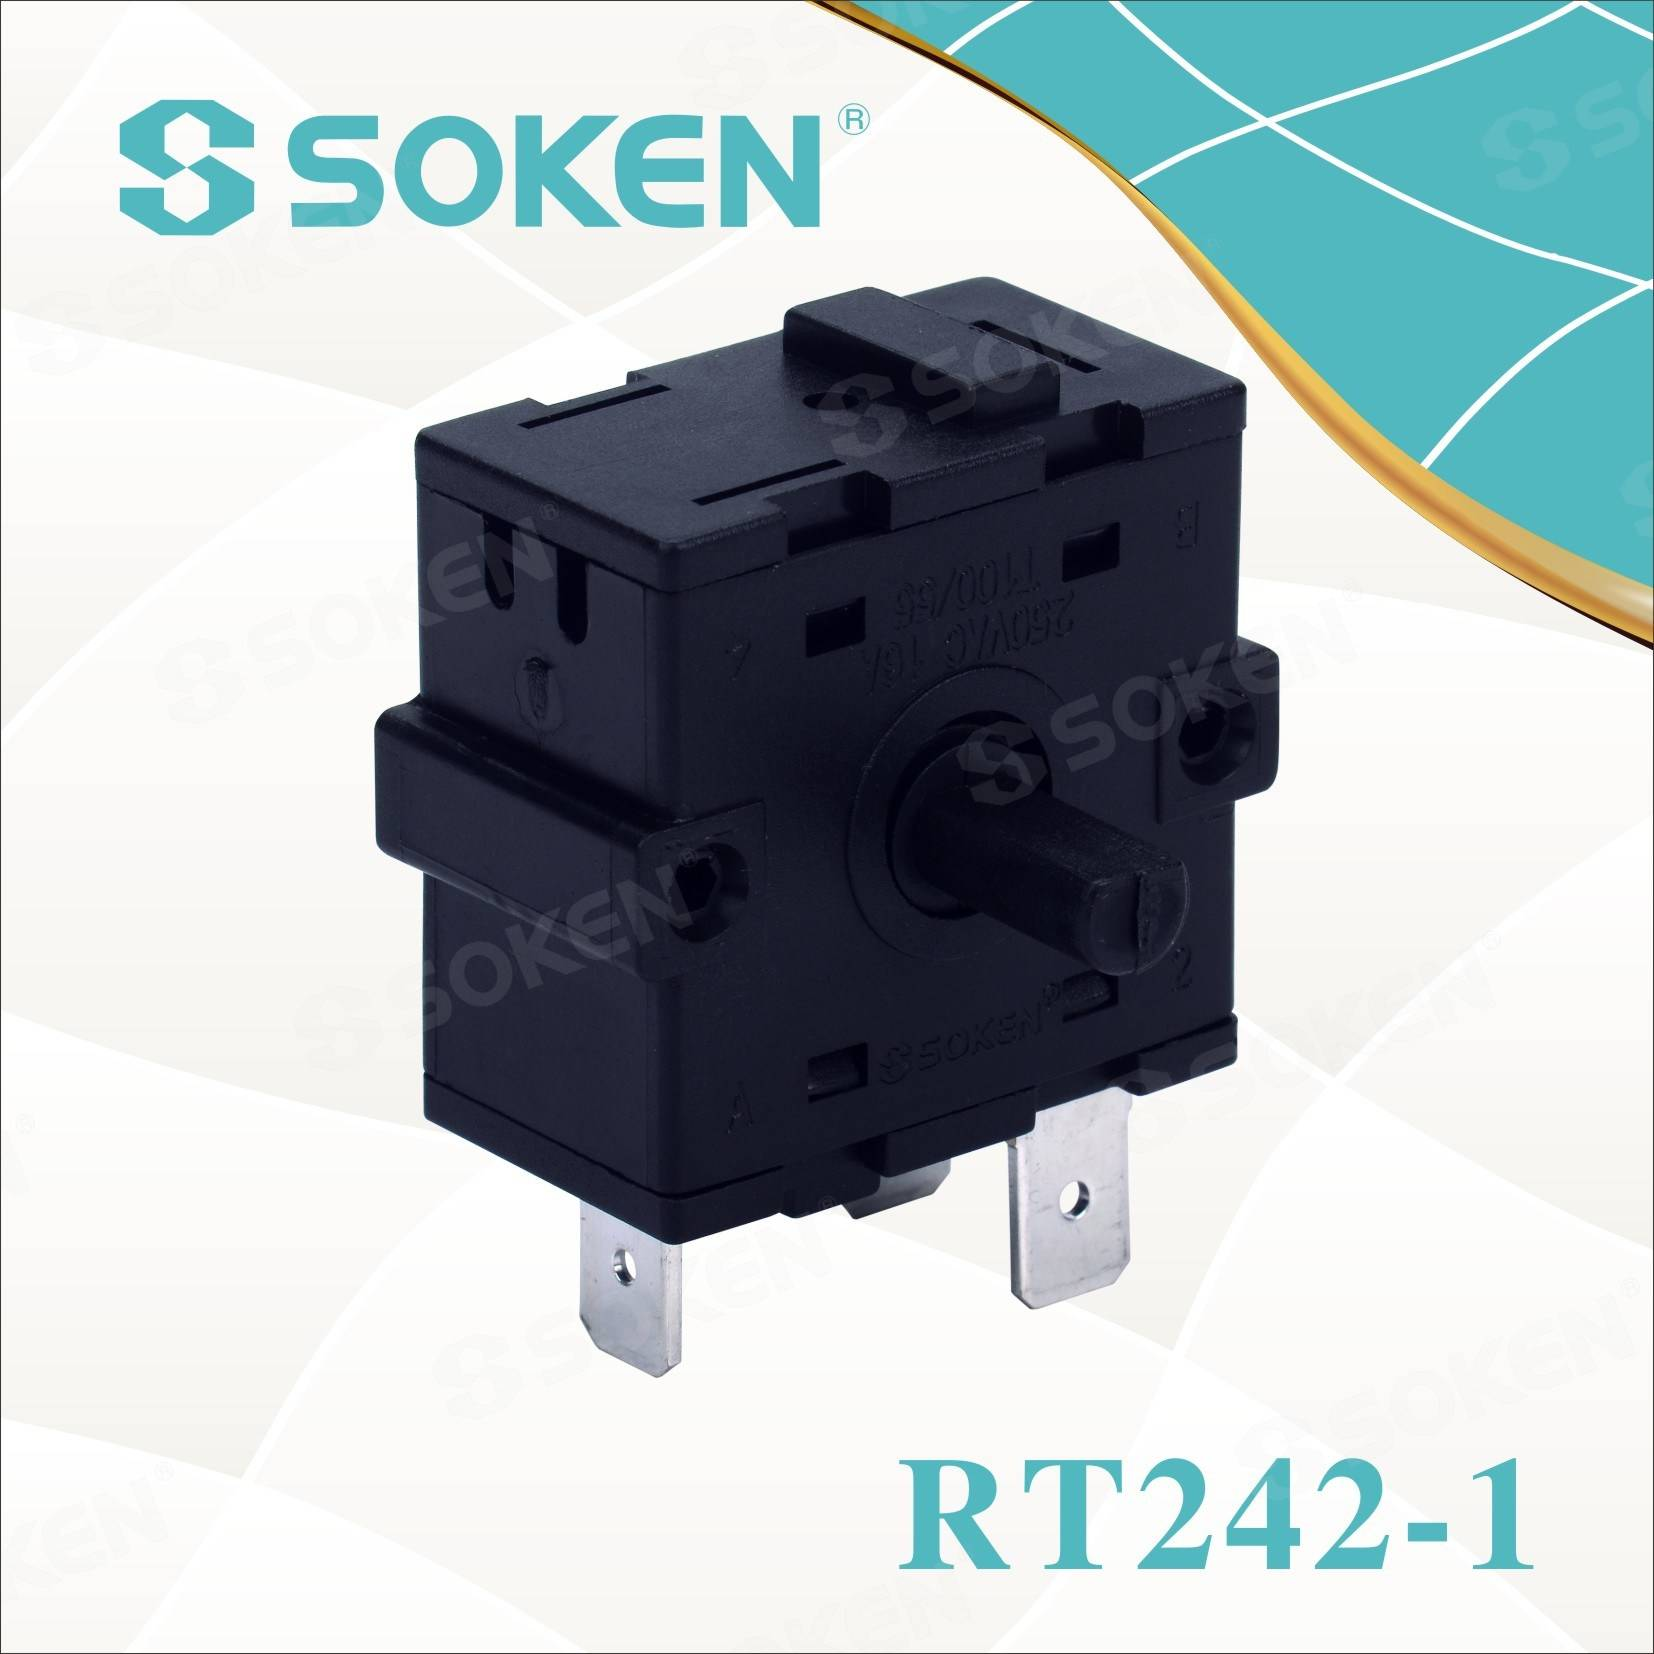 Soken Rotary Switch pliit